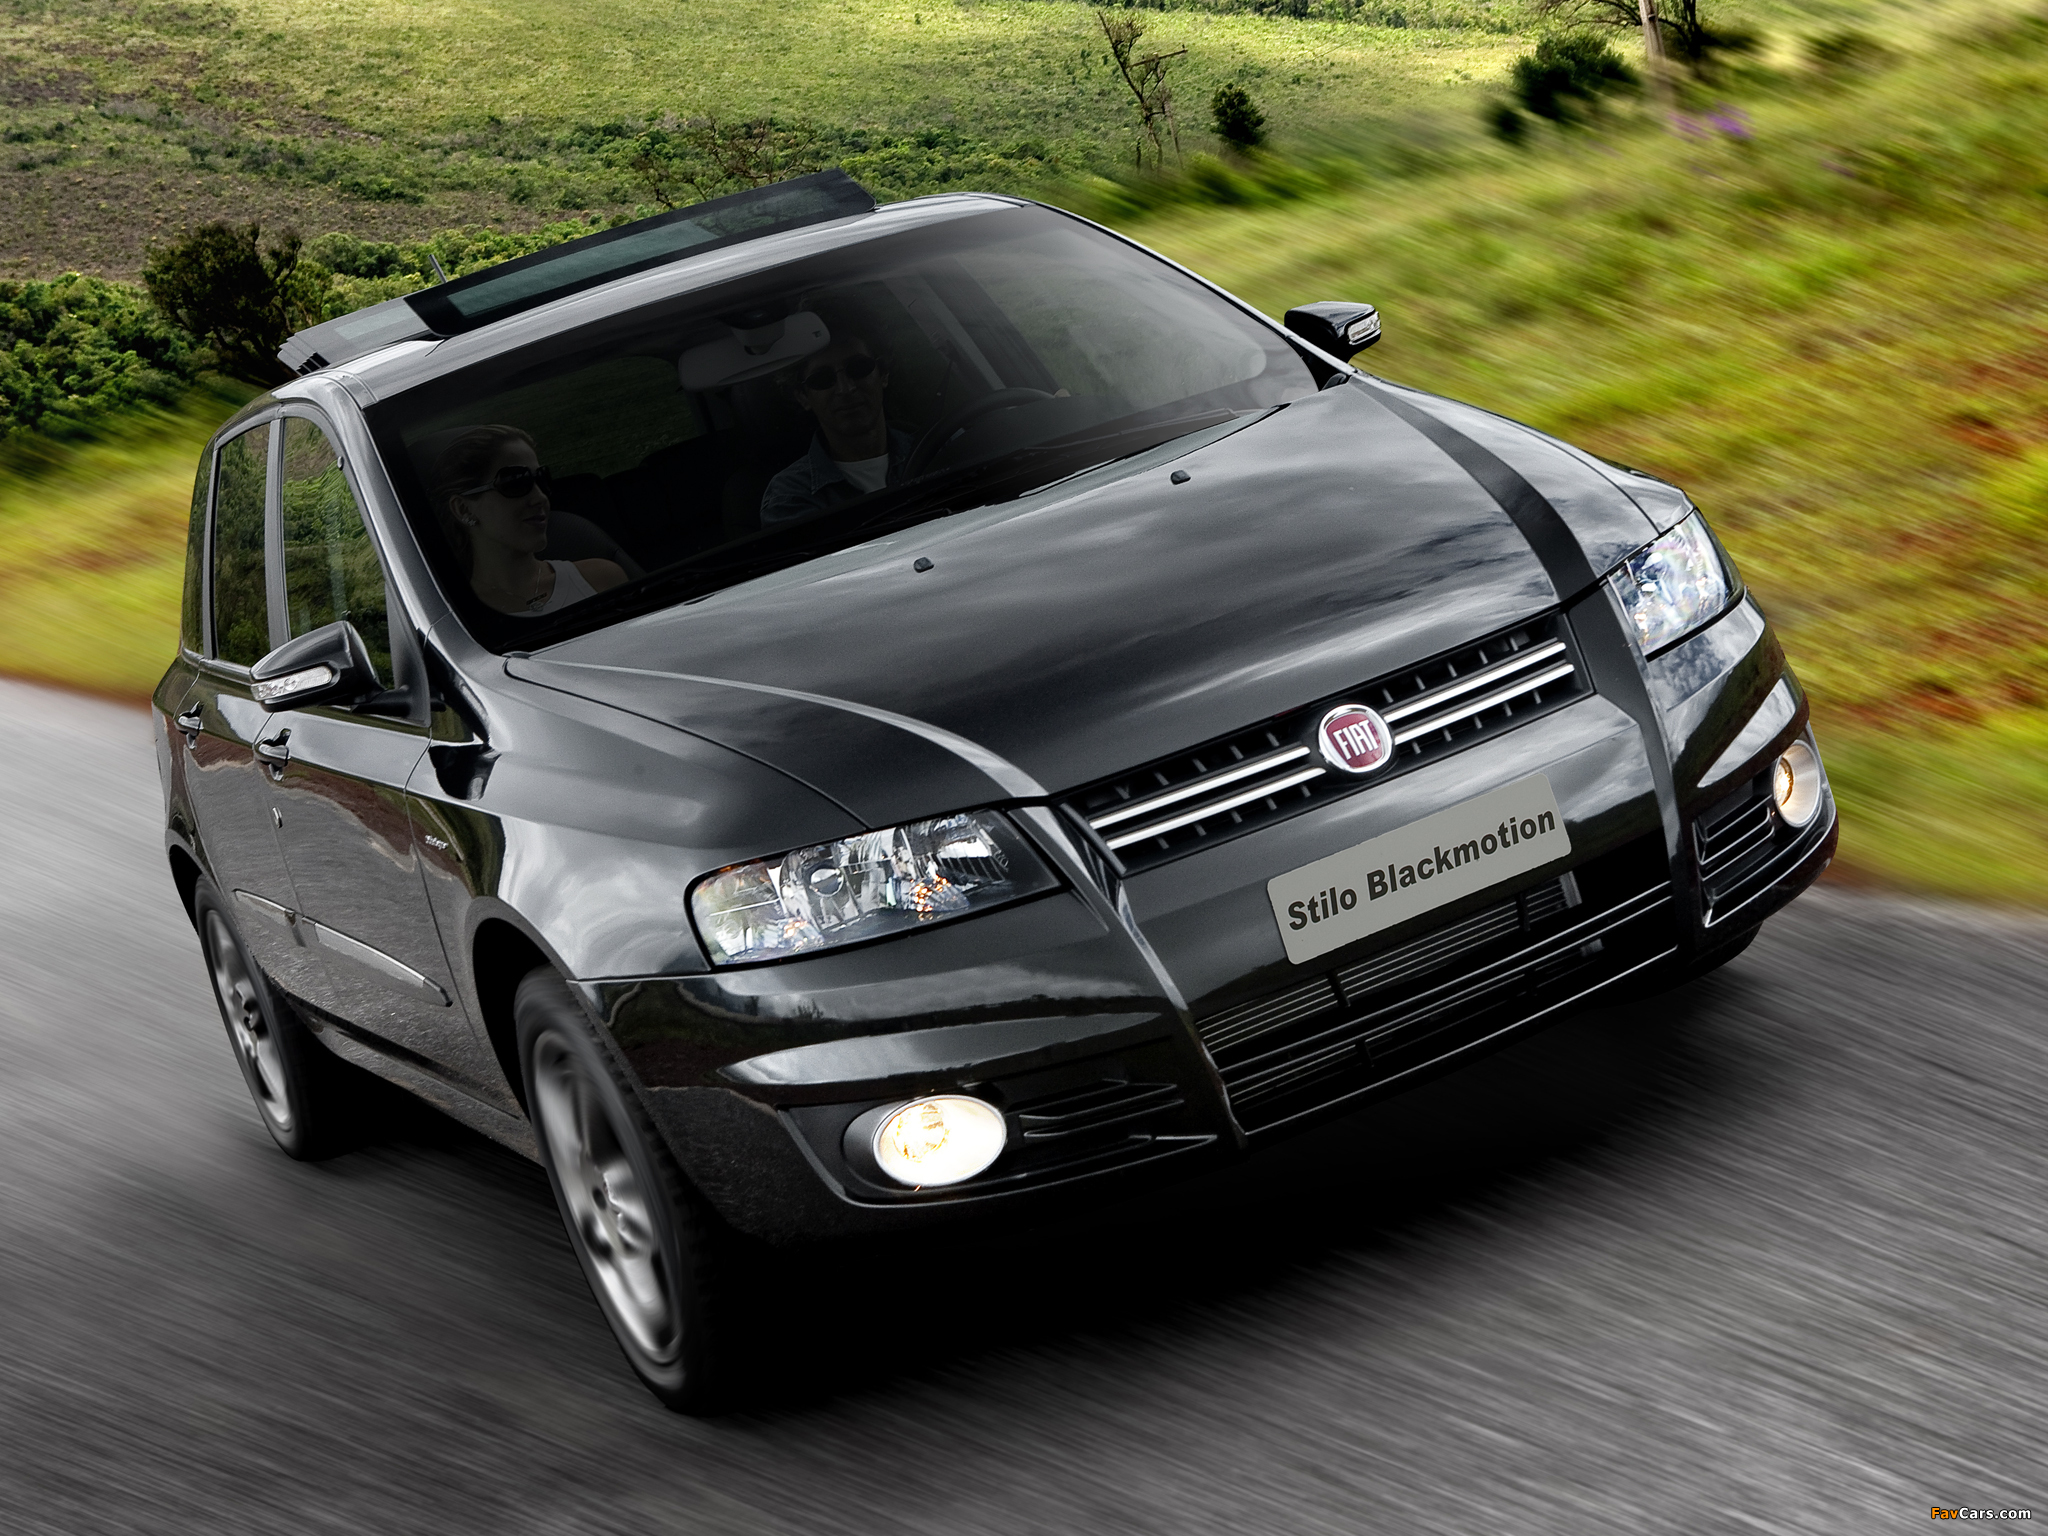 Fiat Stilo BlackMotion (192) 2009 pictures (2048 x 1536)